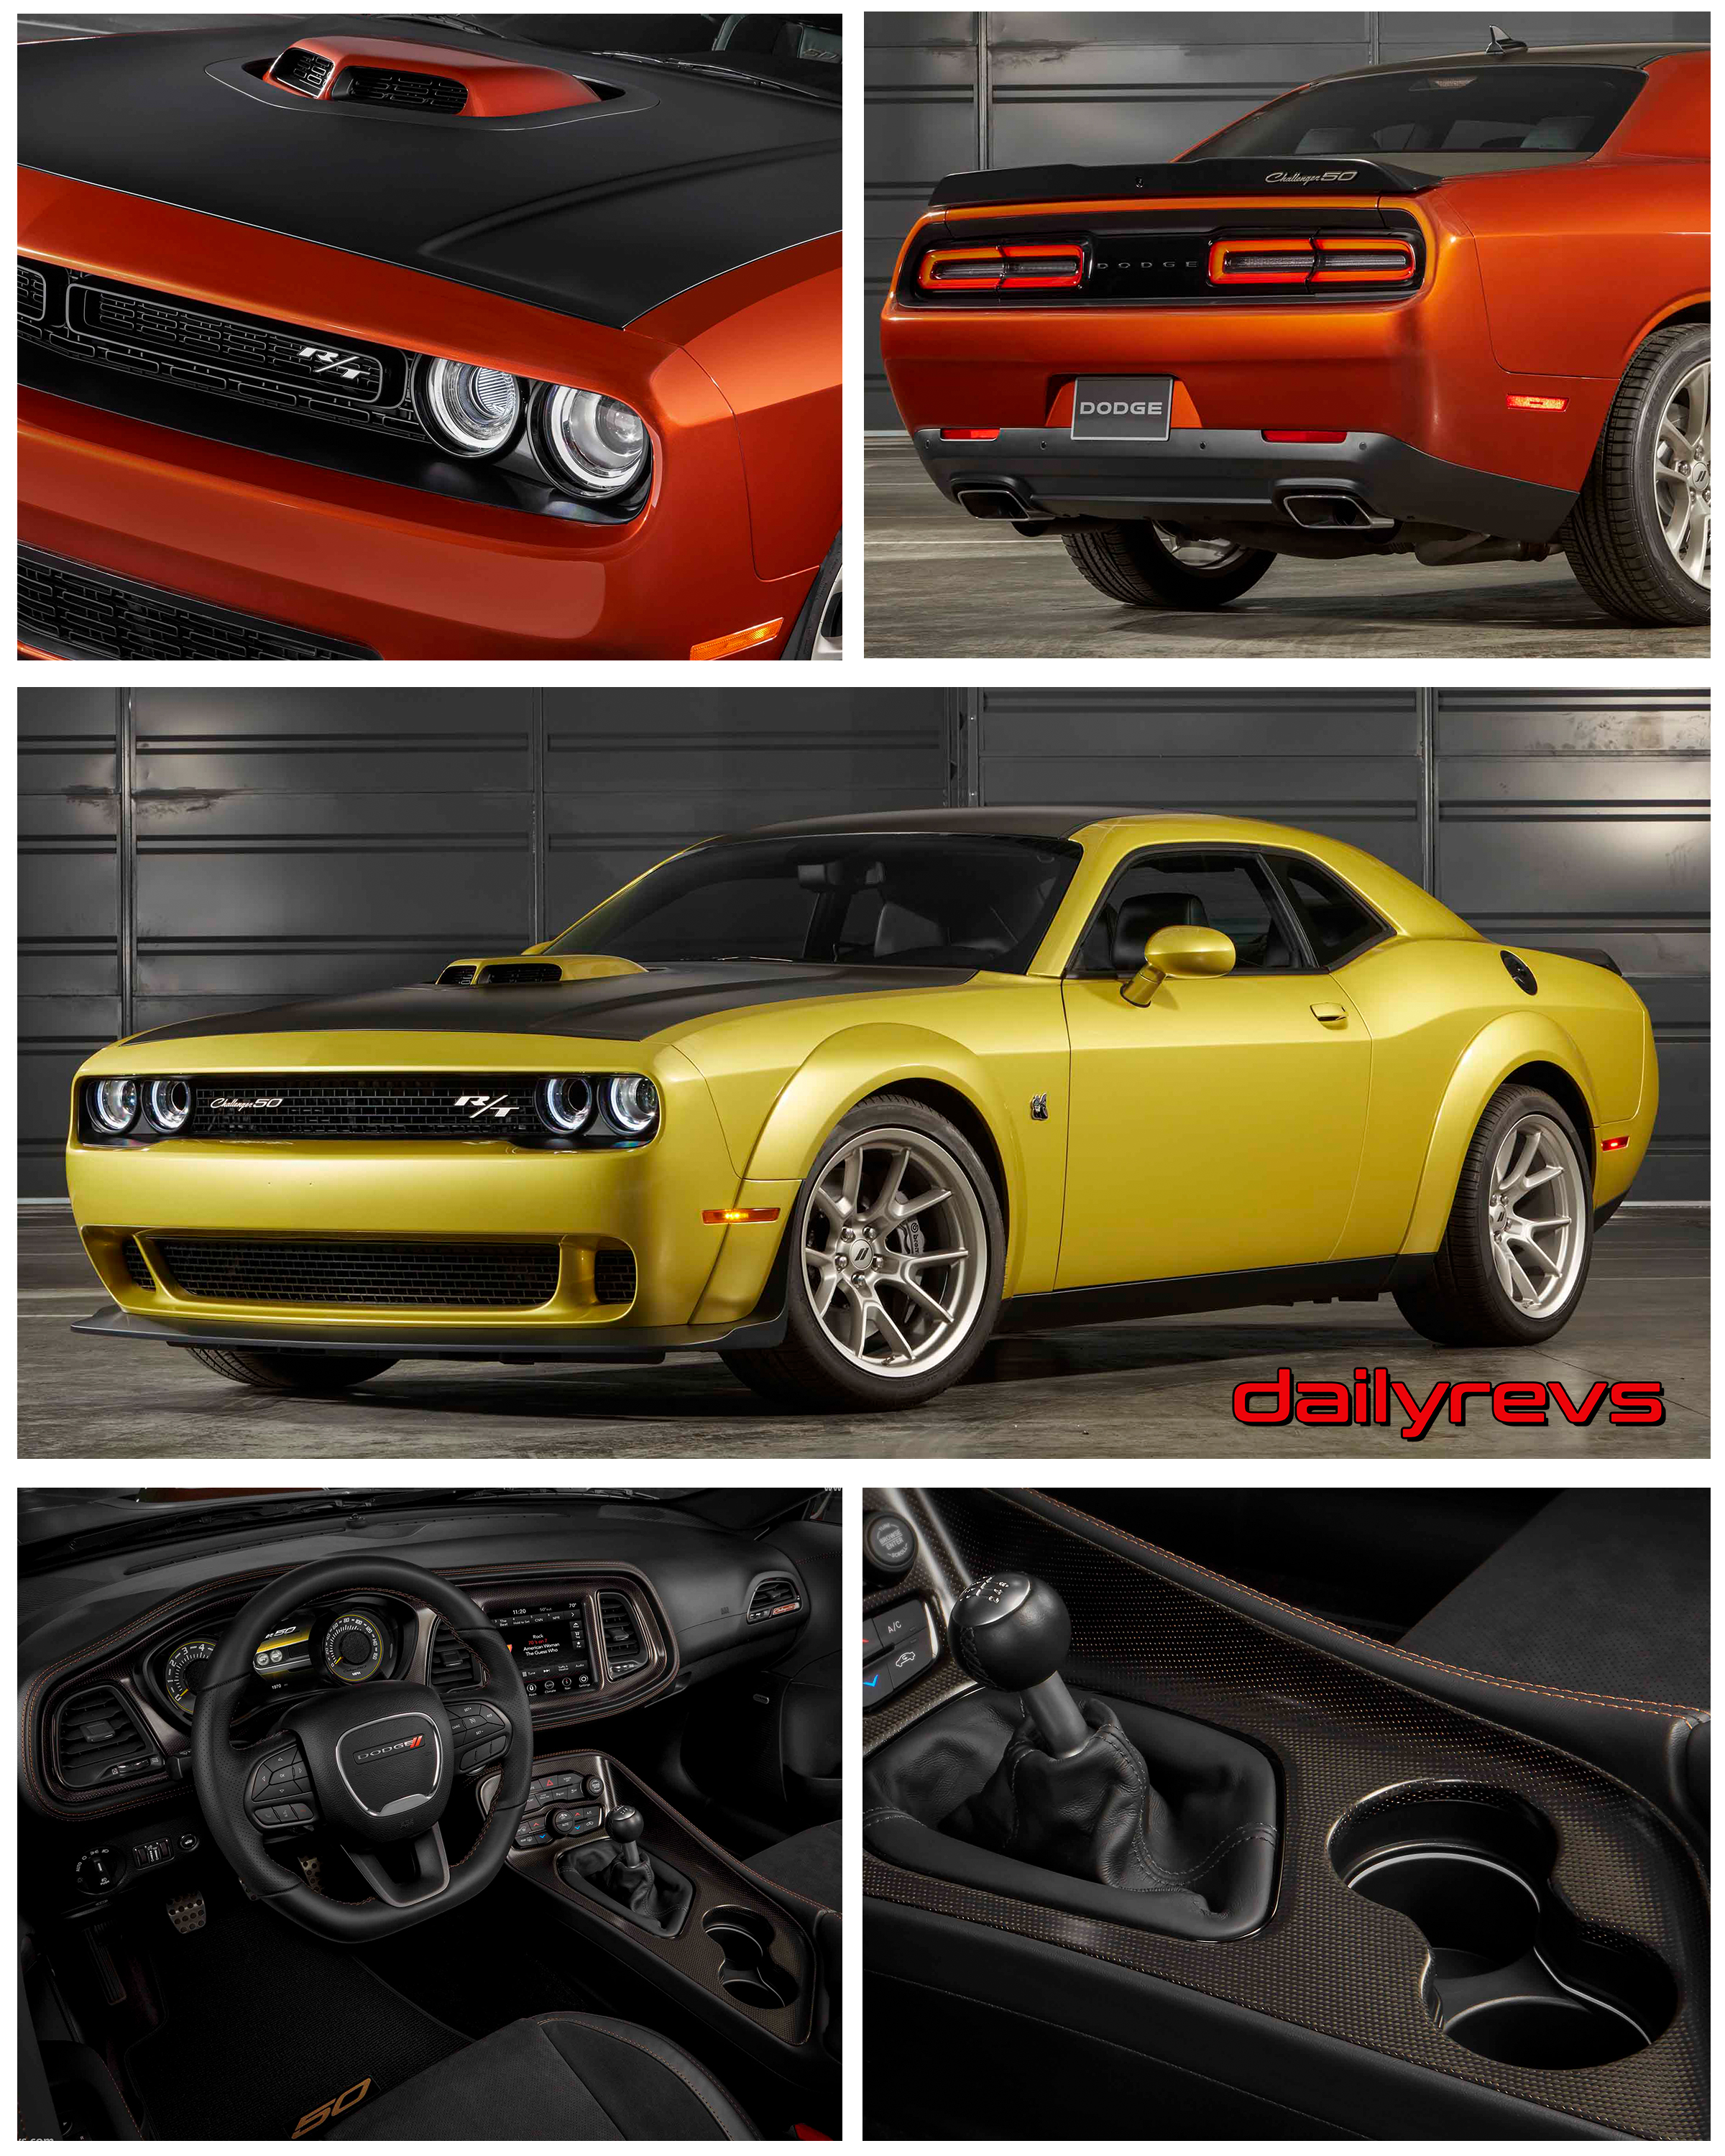 2020 Dodge Challenger Rt 50th Anniversary Edition Hd Pictures Videos Specs Videos Dailyrevs